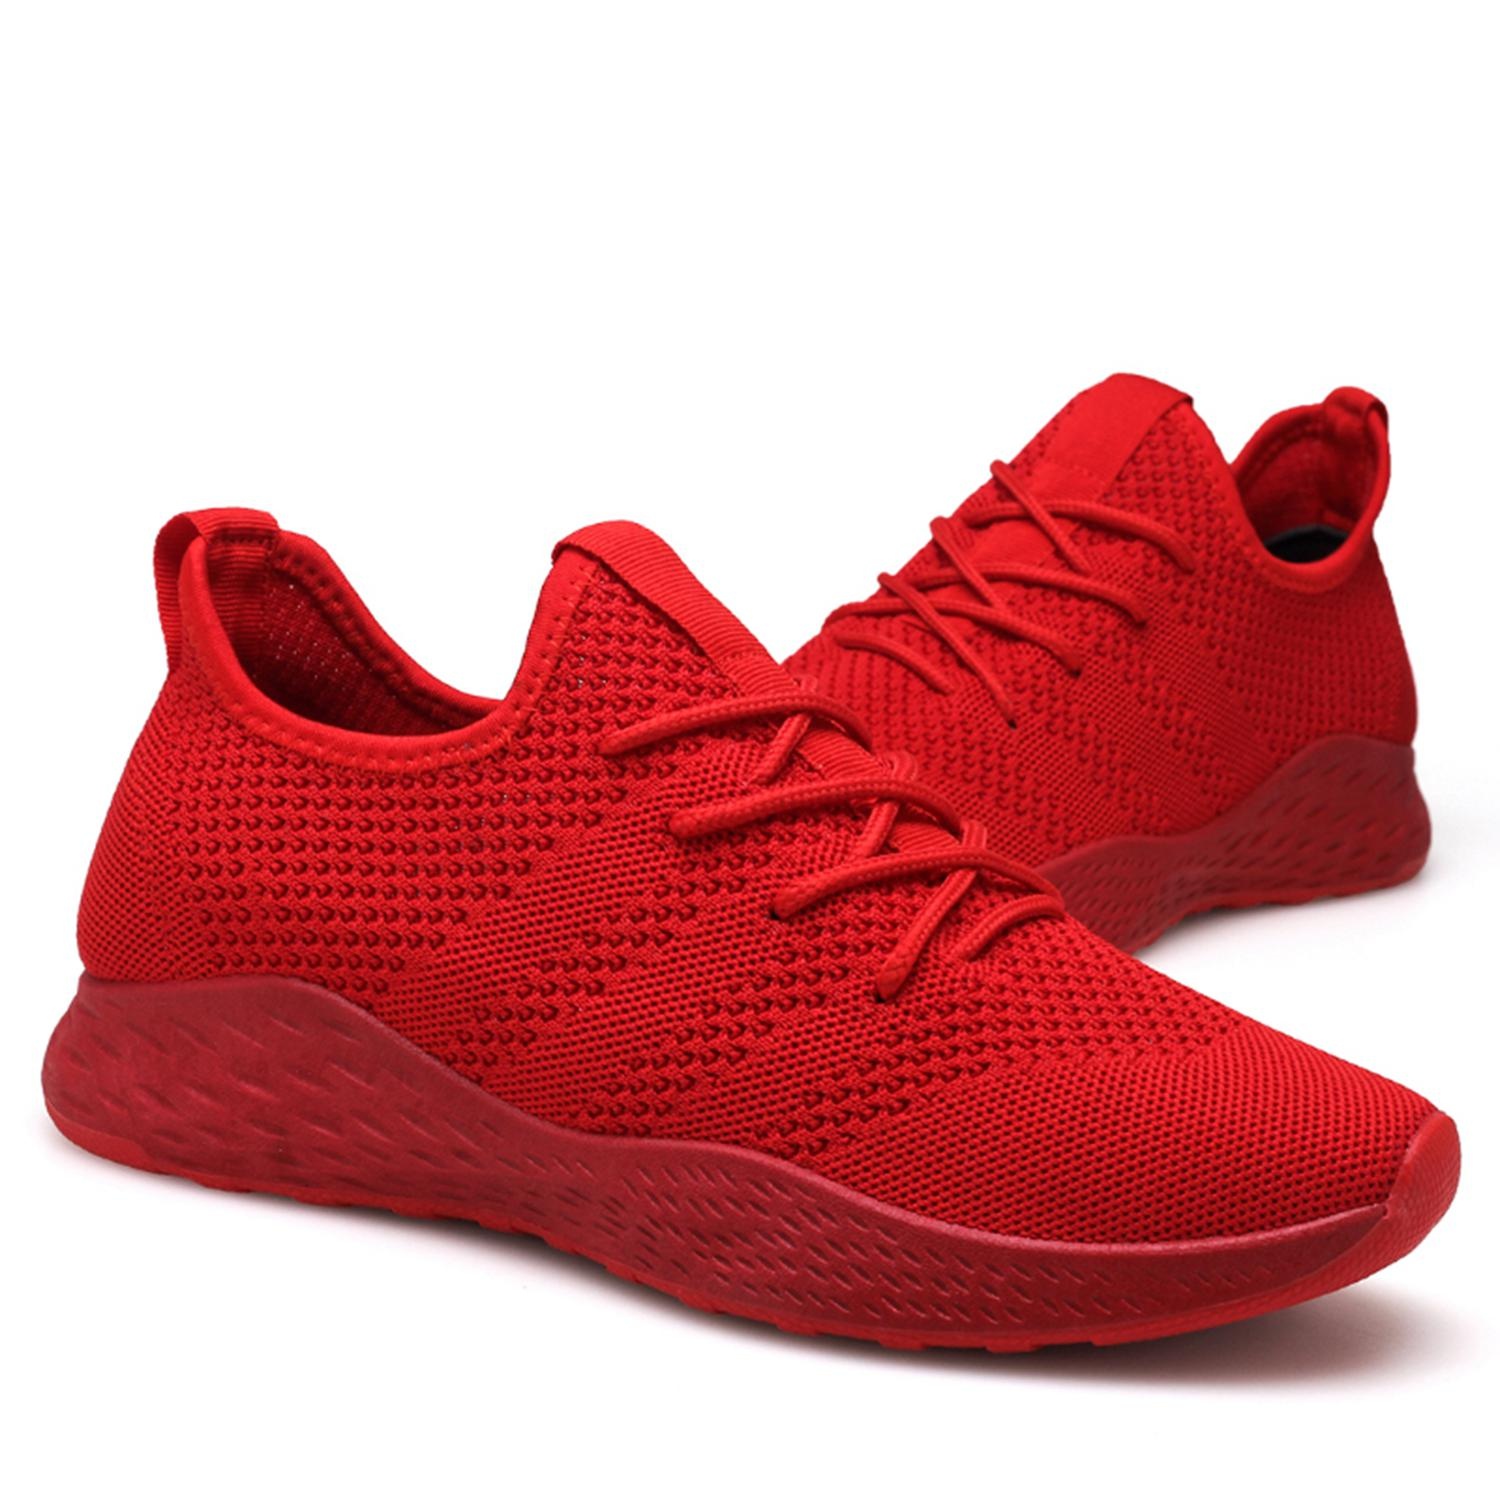 Hombres Adultos Black Zapatos red Up Transpirable Malla gray De assorted Casuales Lace ppxa1